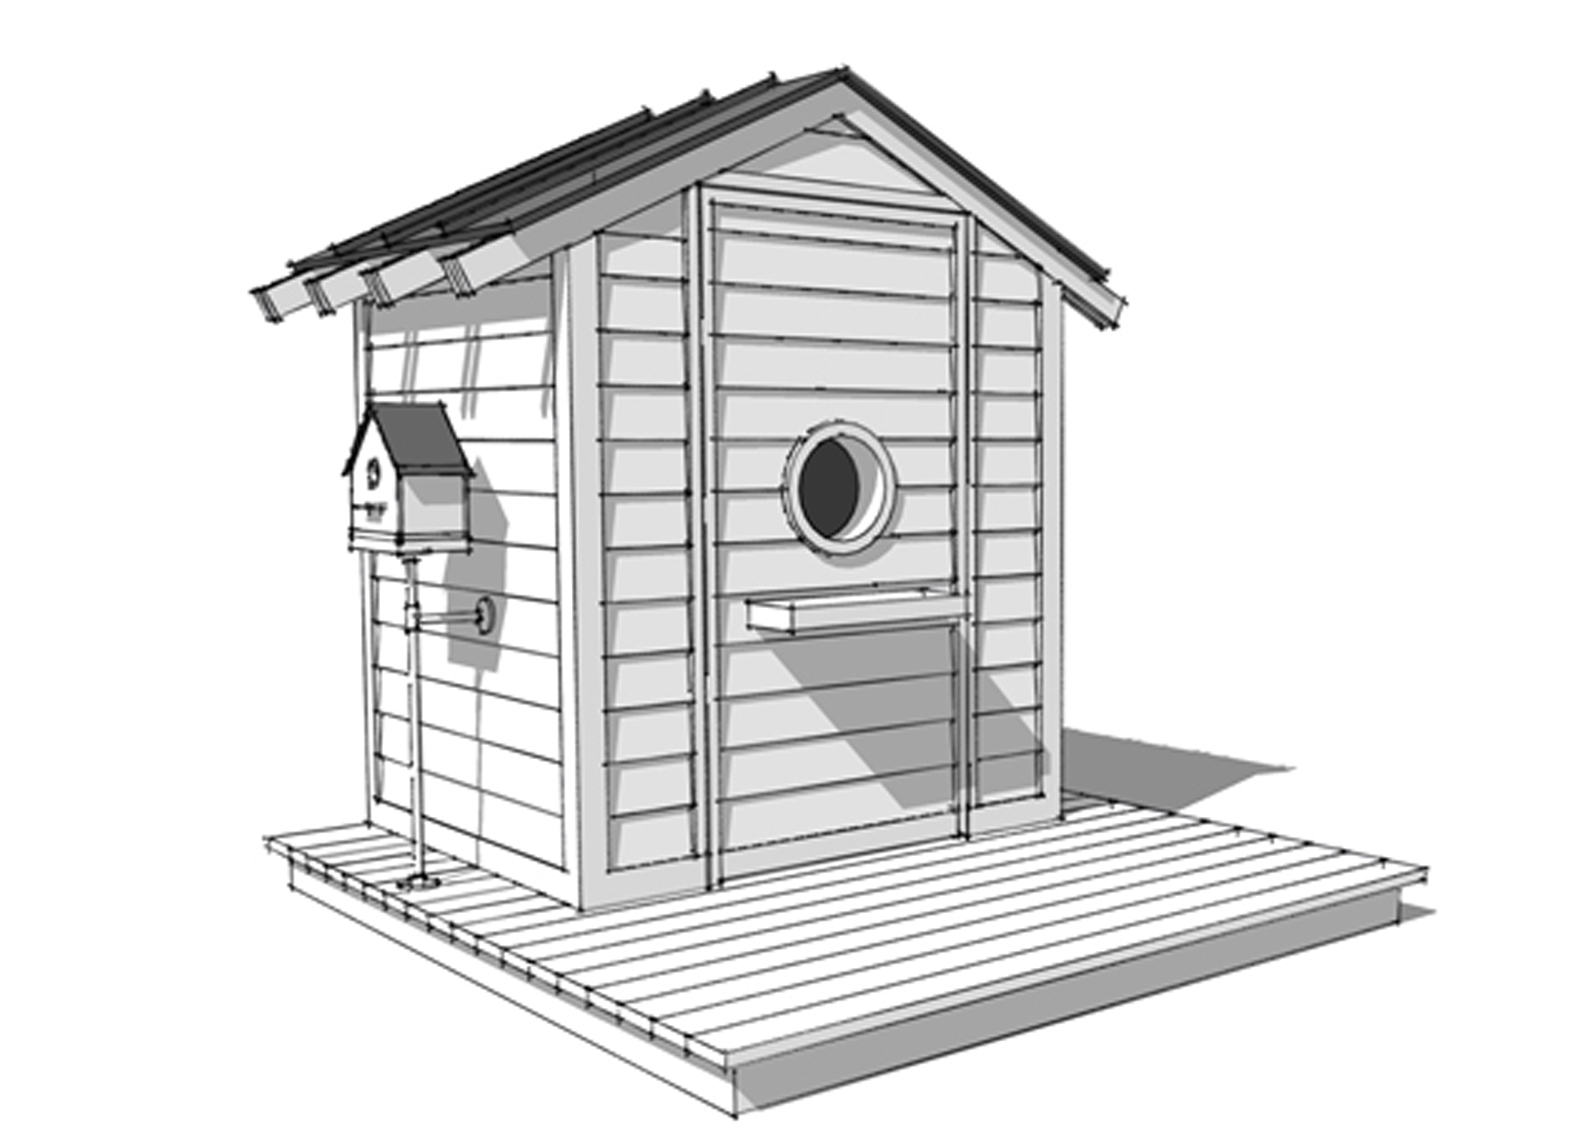 BirdHouse_drawing_01